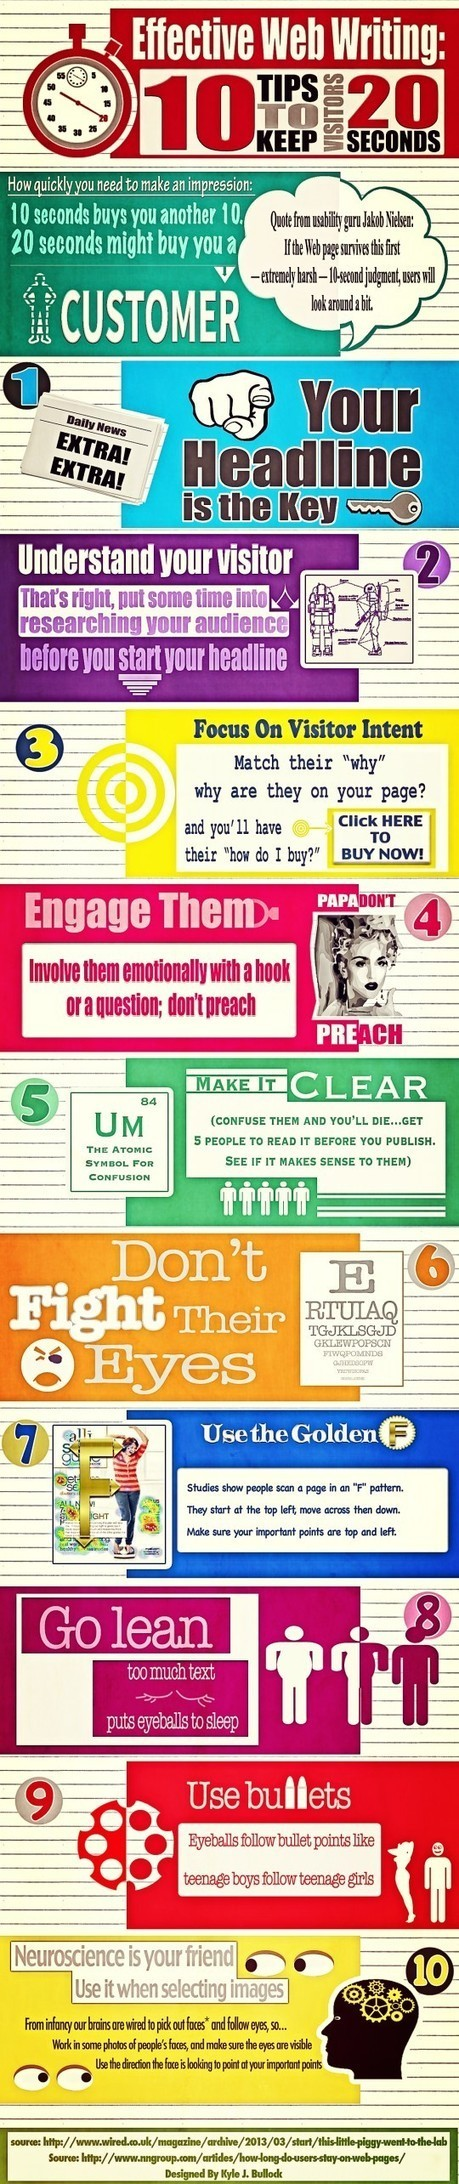 10 Effective Web Writing Tips | Comunicare | Scoop.it